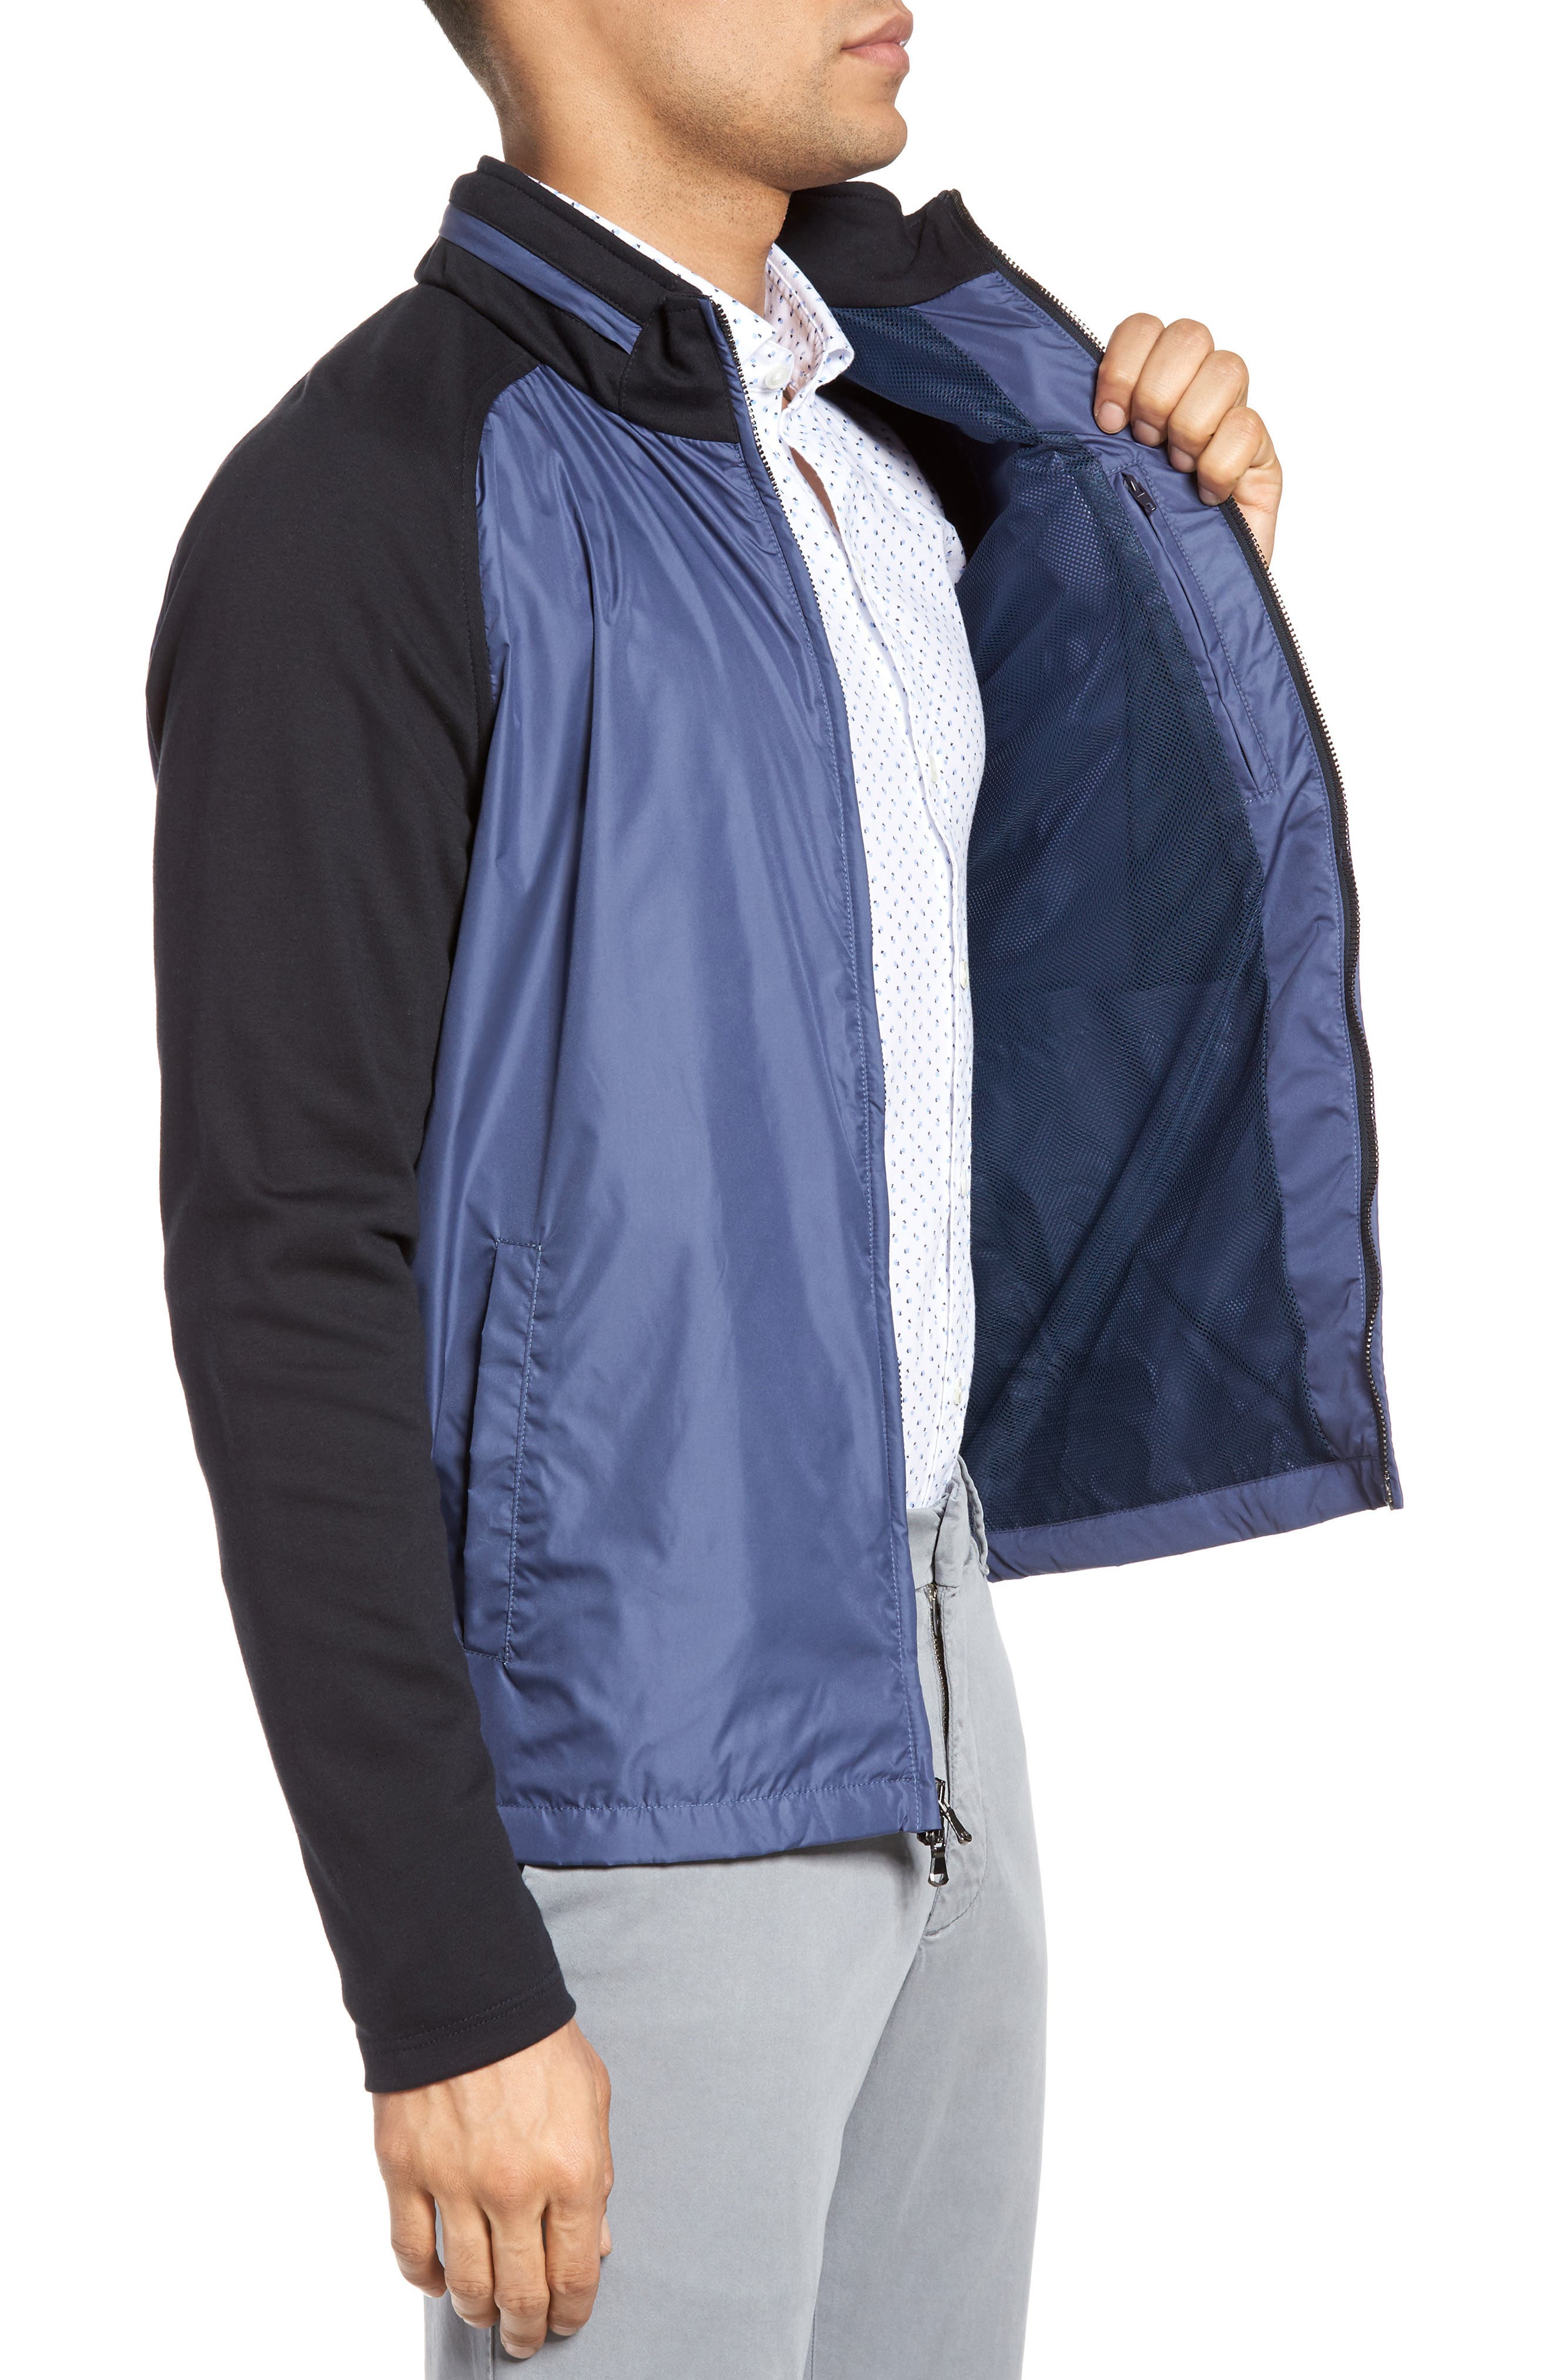 Syconium Mixed Media Zip Front Jacket,                             Alternate thumbnail 3, color,                             Blue